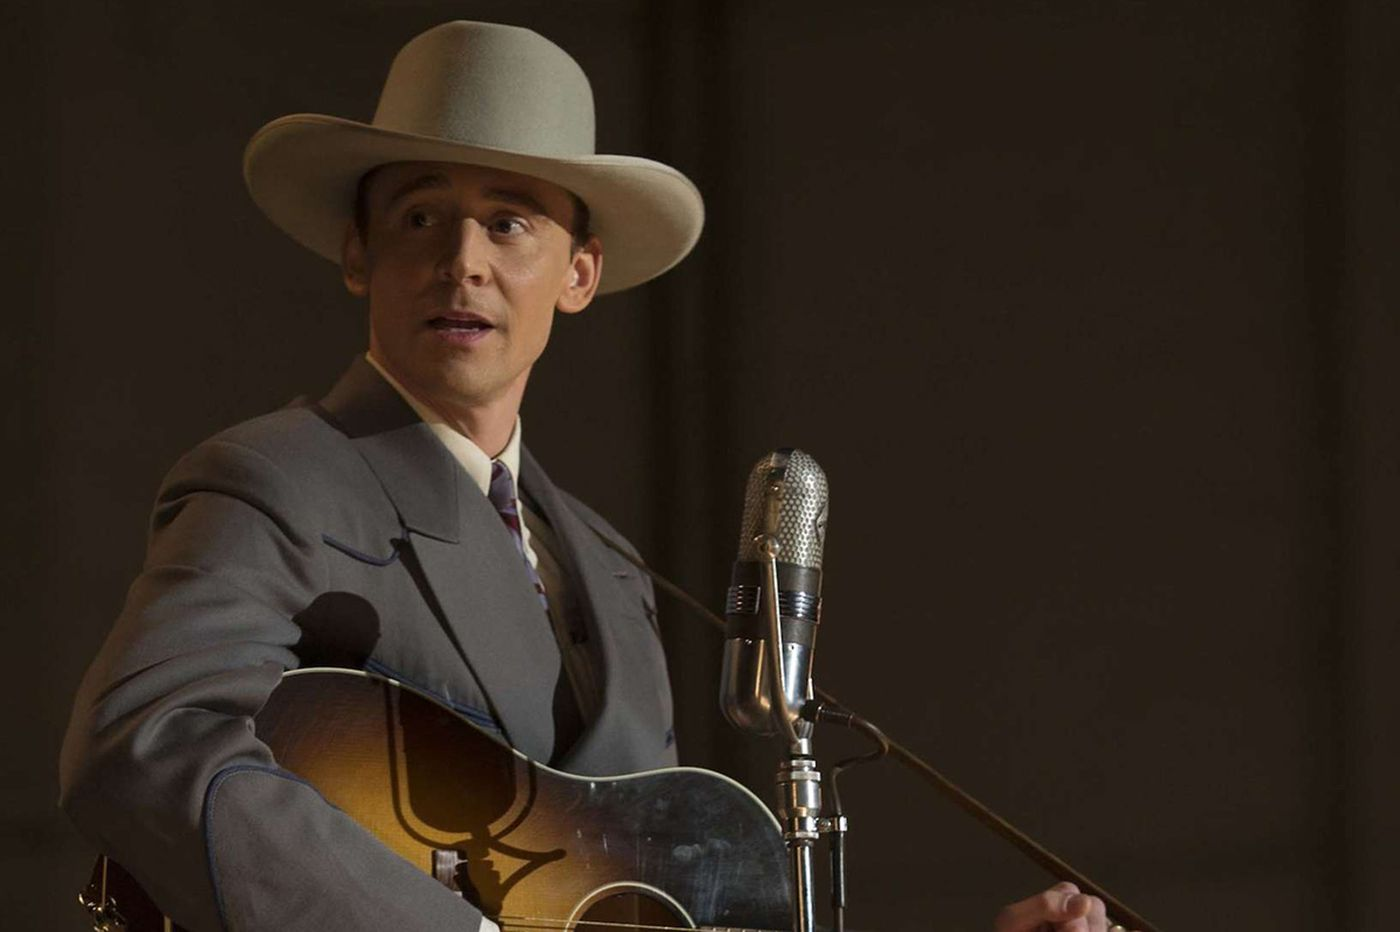 'I Saw the Light': Hank Williams biopic all hat and no heart